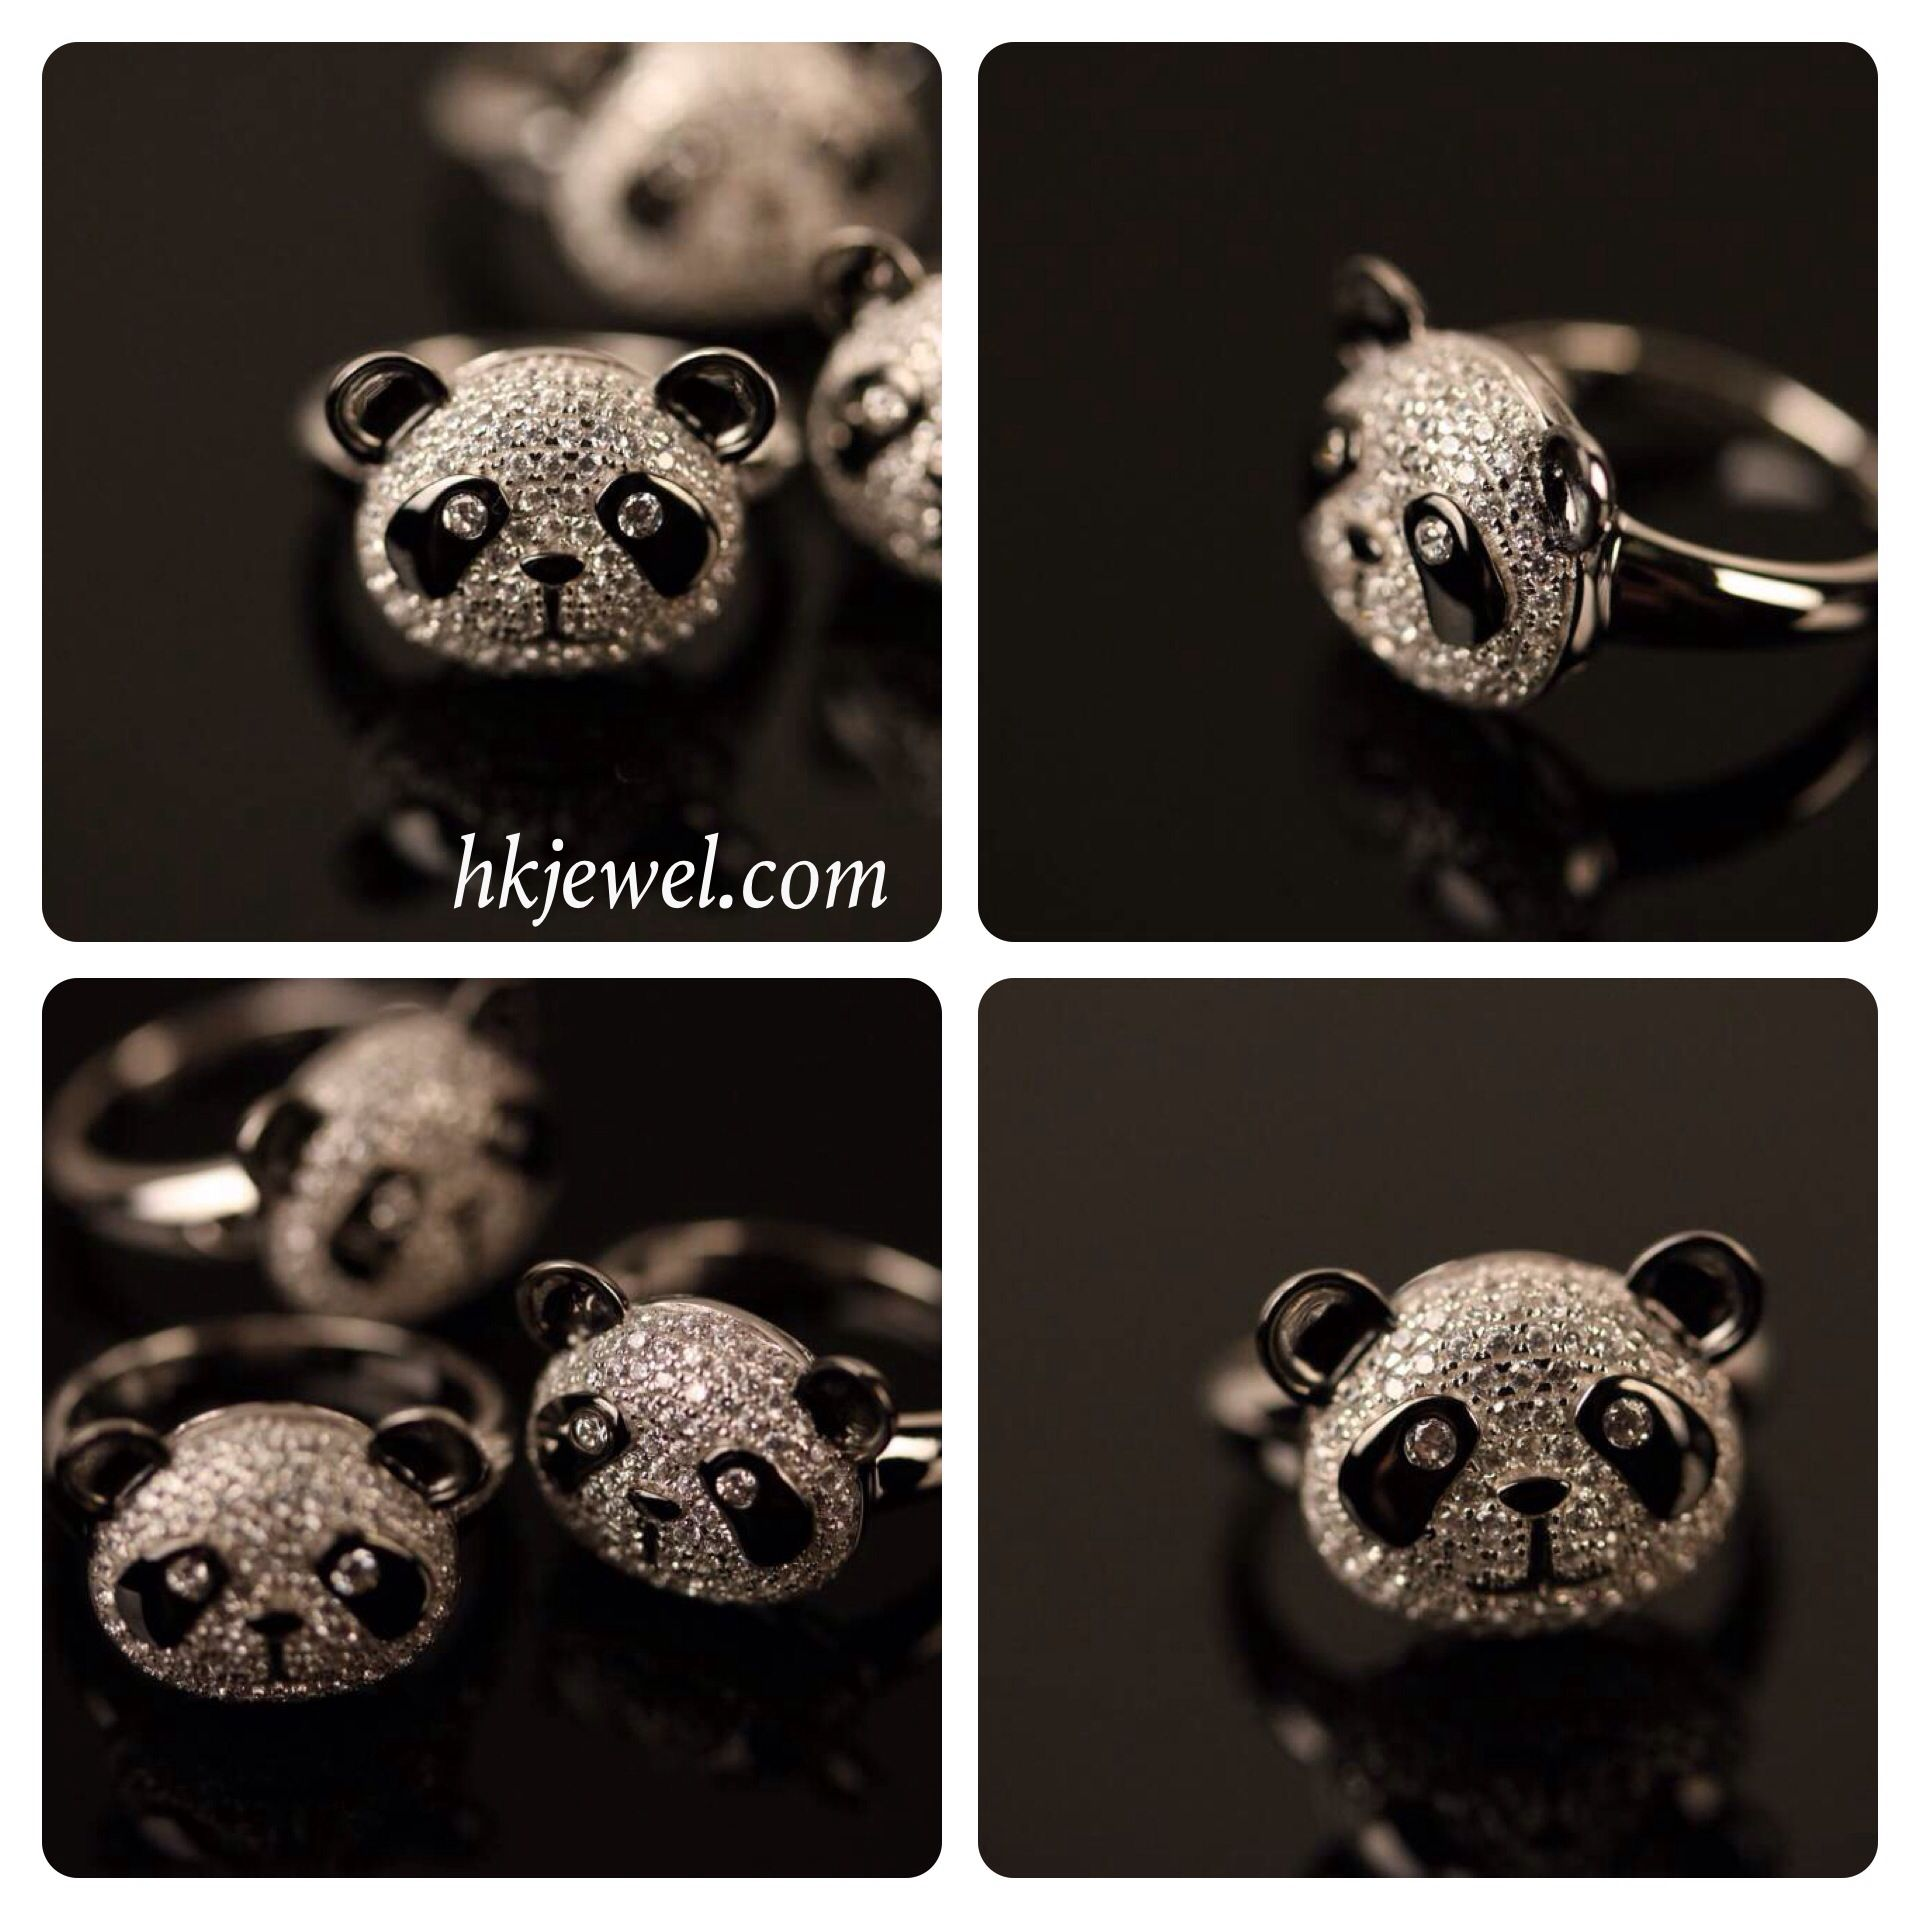 New arrival panda rings very cute design want to have one contact